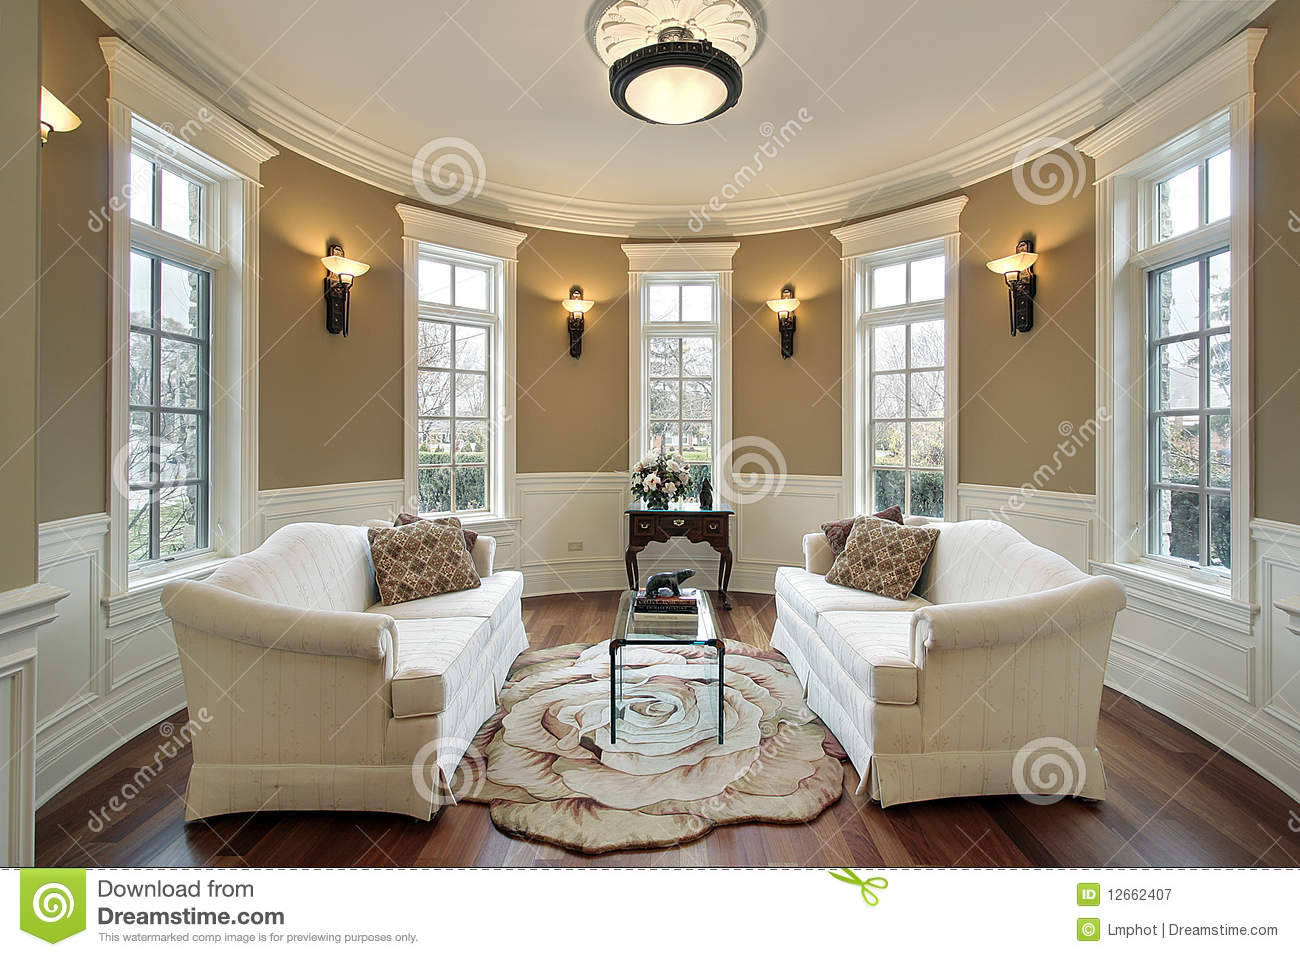 Living Room With Lighting Scones Royalty Free Stock graphy Image